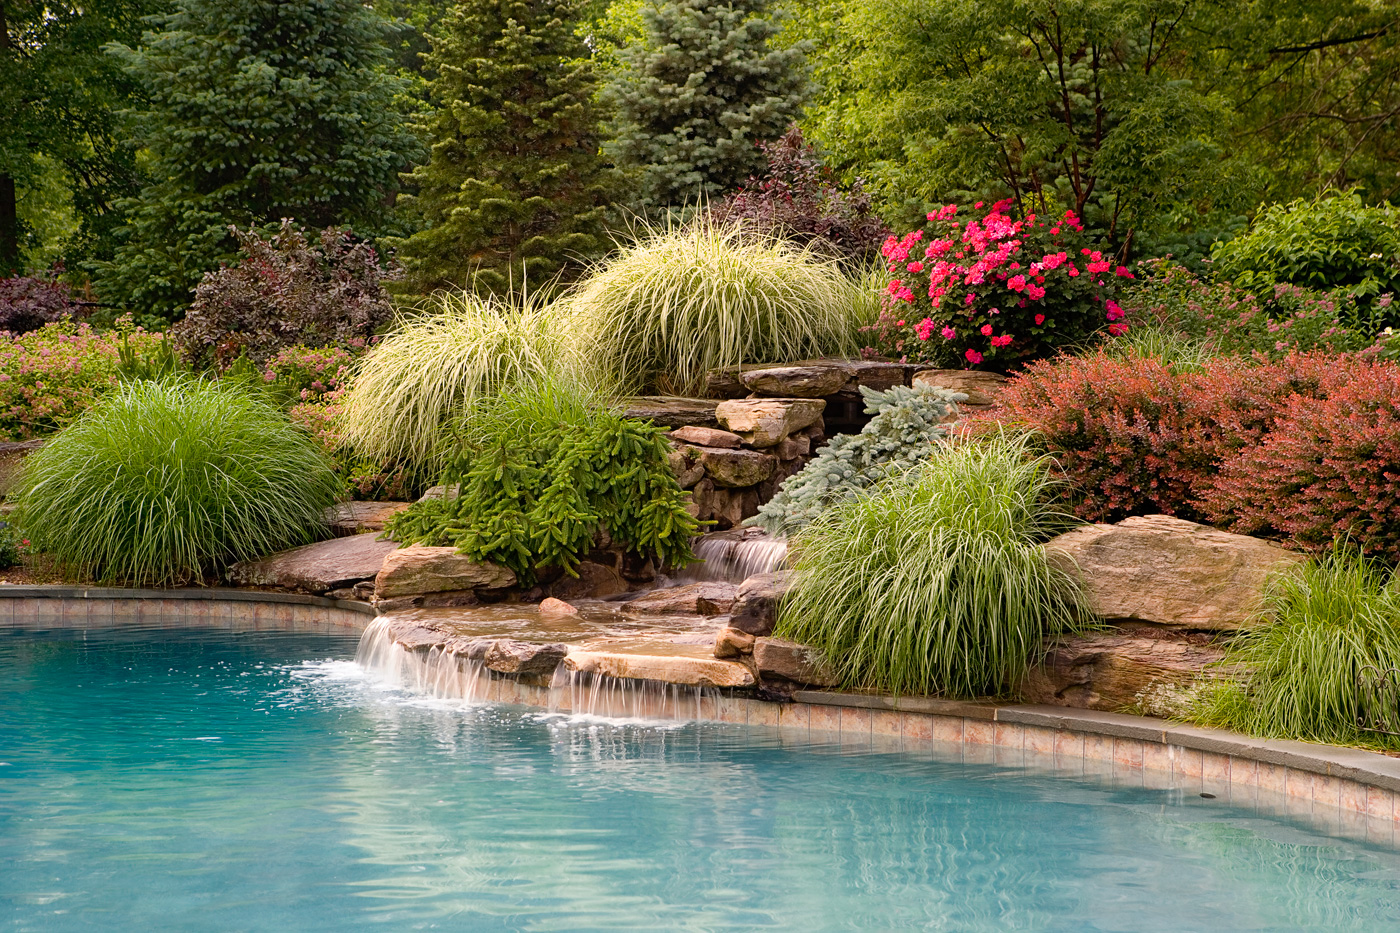 Waterfalls - Cording Landscape Design